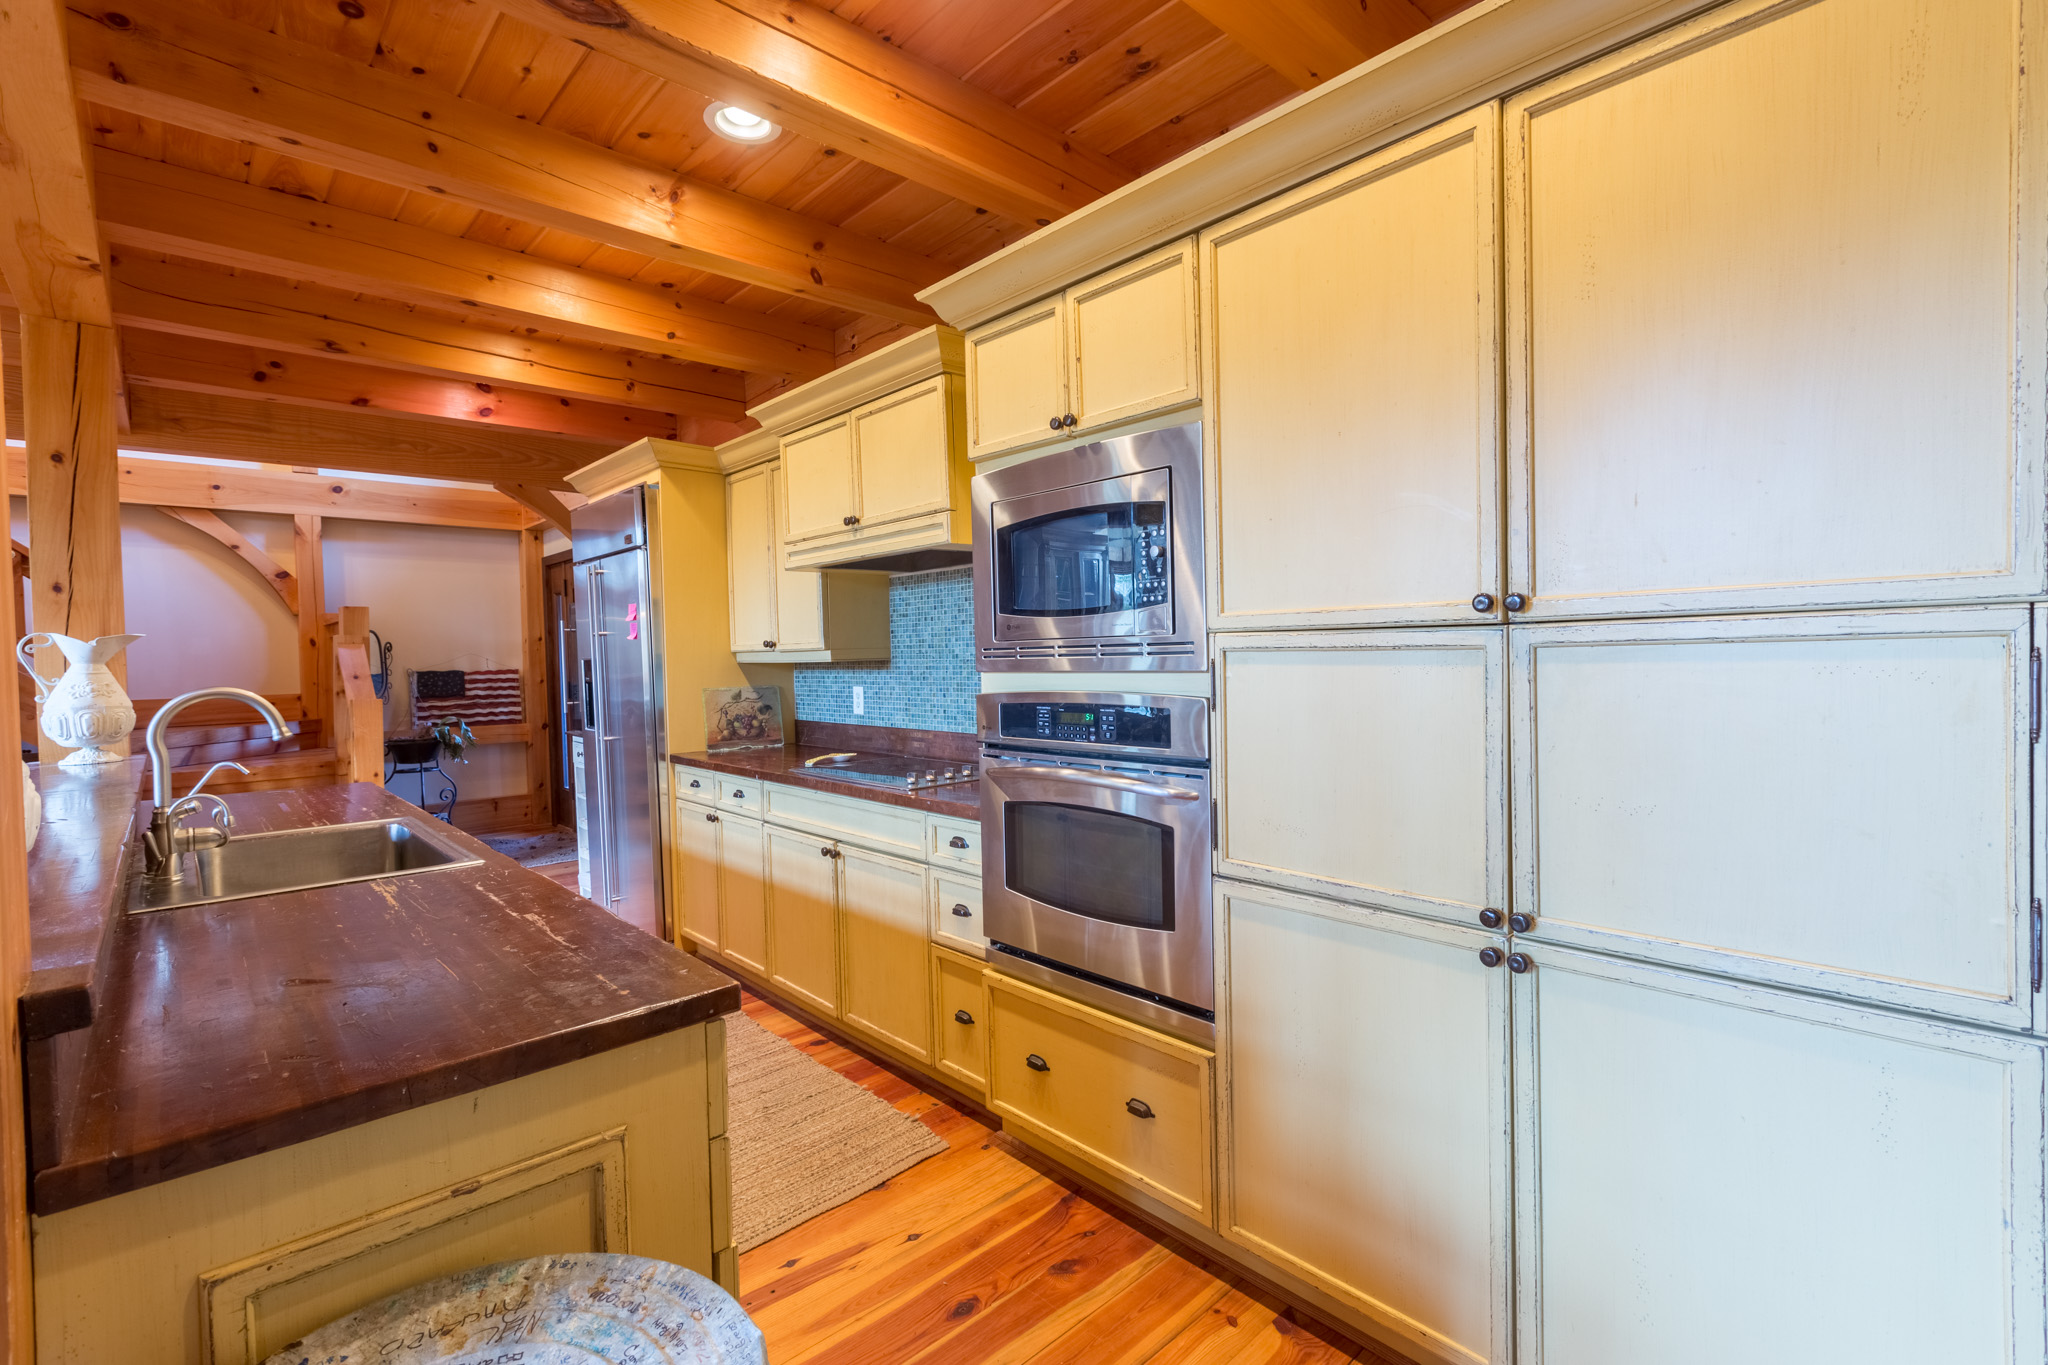 View of French country kitchen at cabin on Lake James Real estate